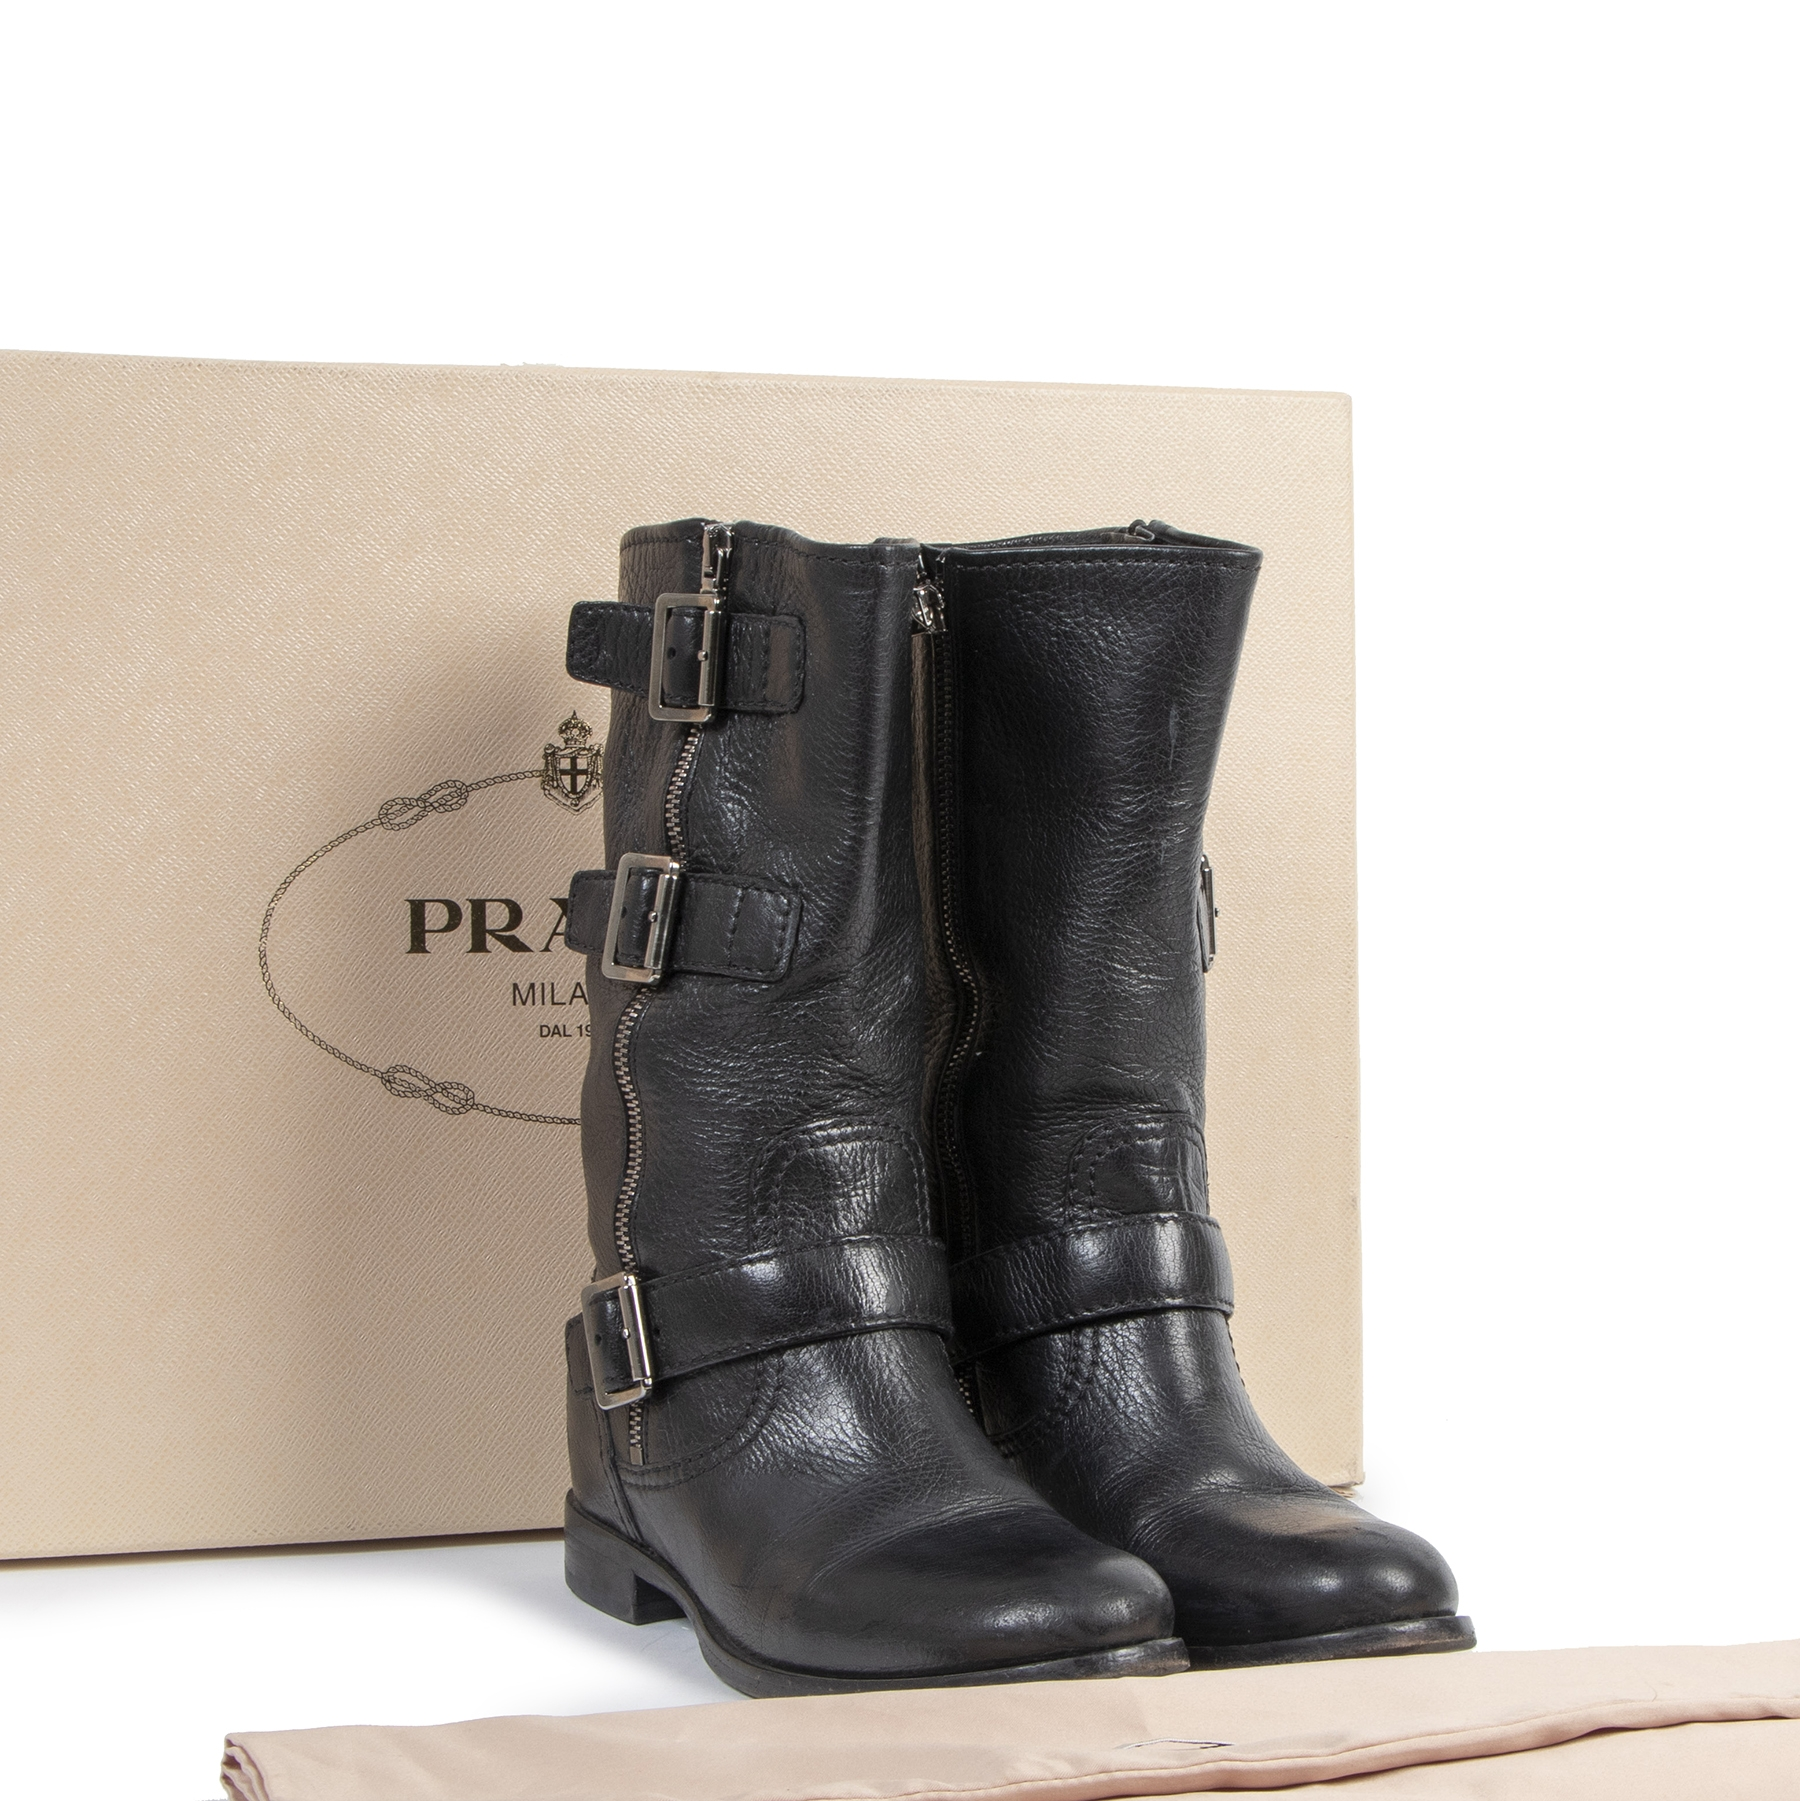 Authentic secondhand Prada Black Leather Zip Up Boots - Size 36 designer shoes luxury vintage webshop fashion safe secure online shopping